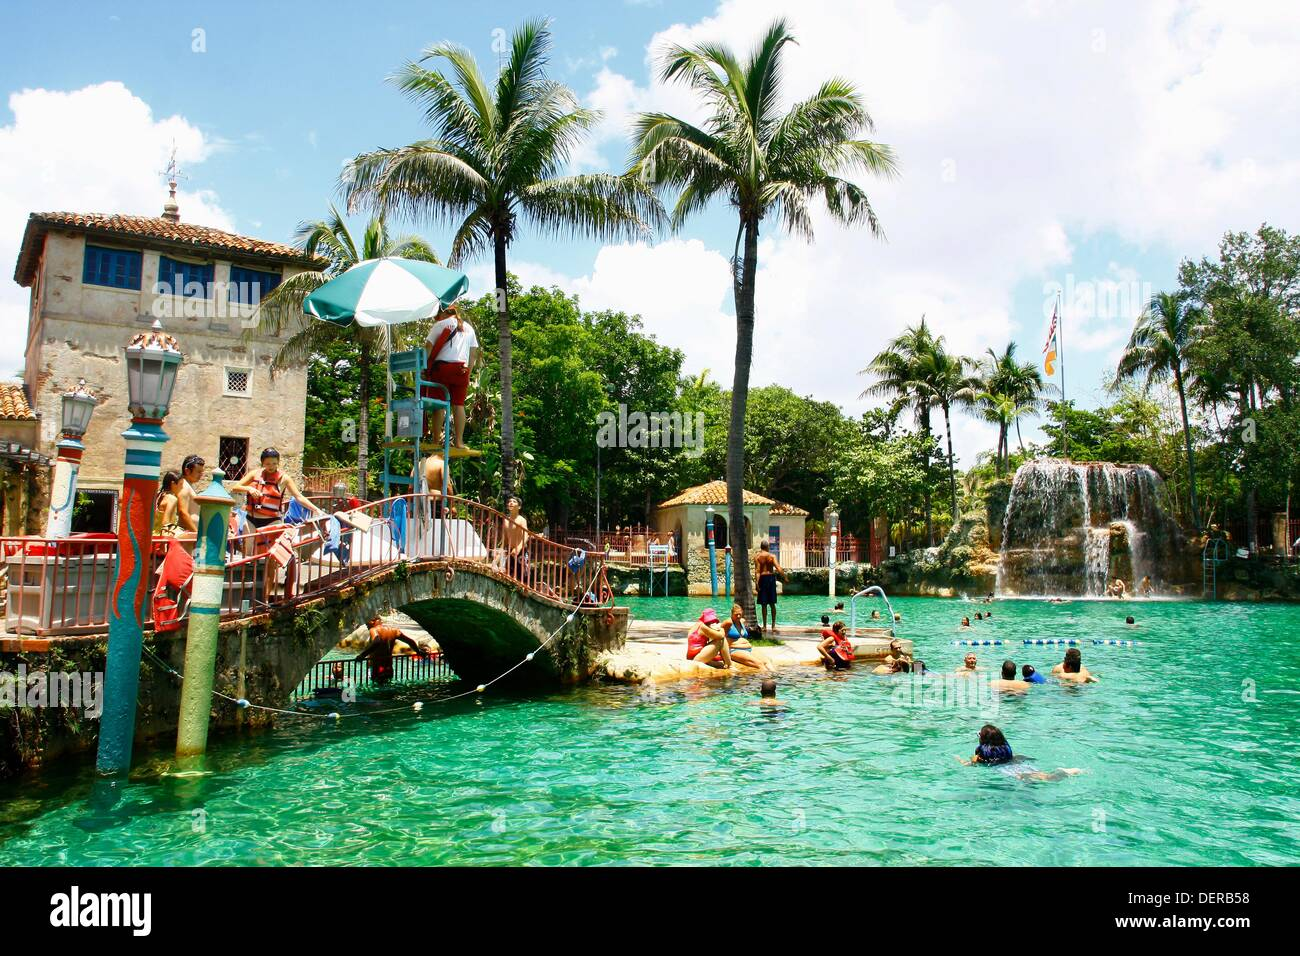 Venetian Pools, Coral Gables, Miami, Florida, USA - Stock Image